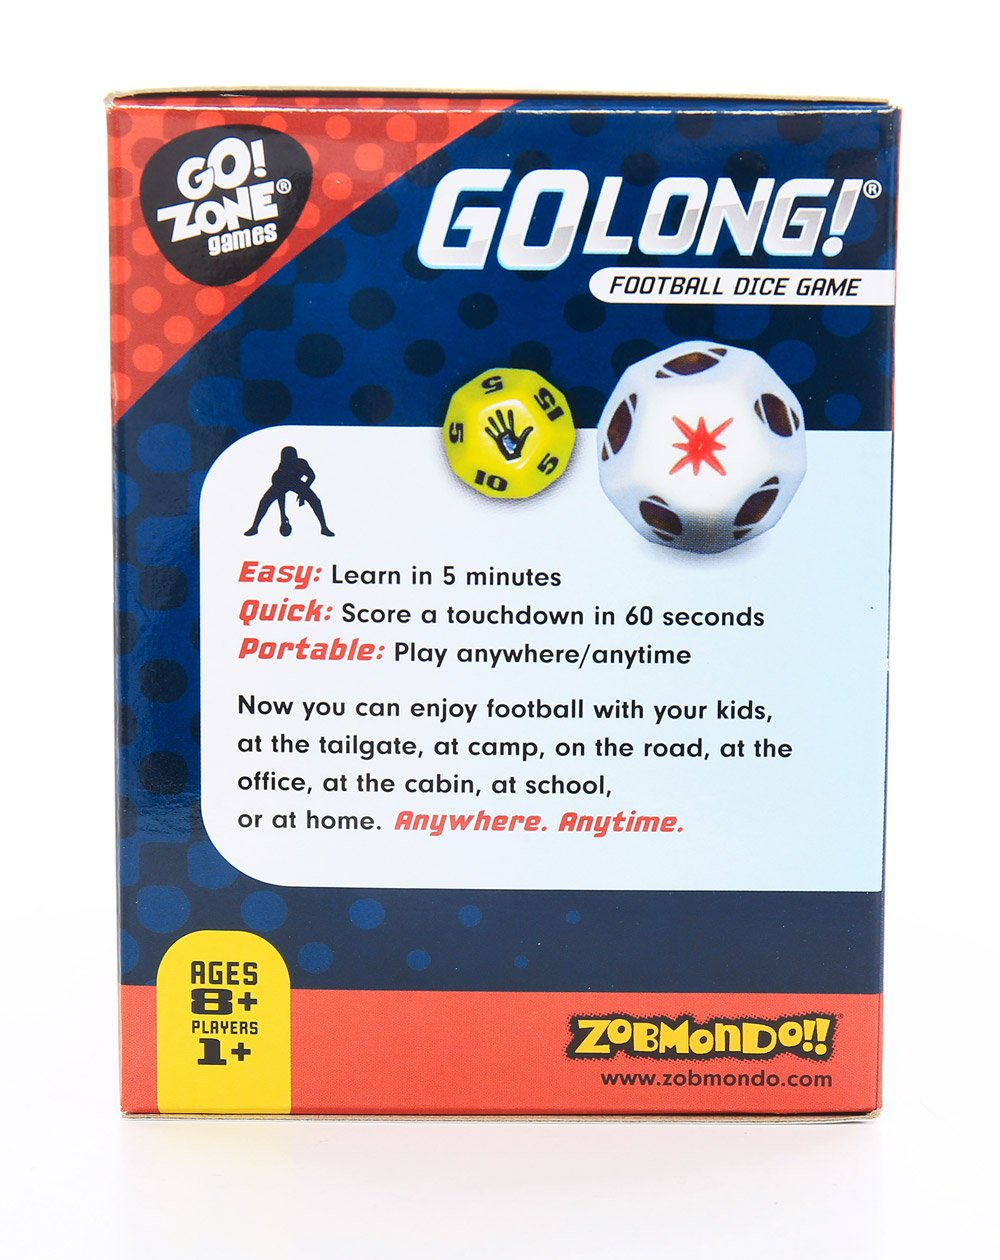 Zobmondo!! Award winning Dice Game, GoLong! A Football Dice Game - Super Fun Game - Portable, Playing Dice : Perfect For - Travel, Home, Parties, Gifts, Stocking Stuffers by Zobmondo!! (Image #3)